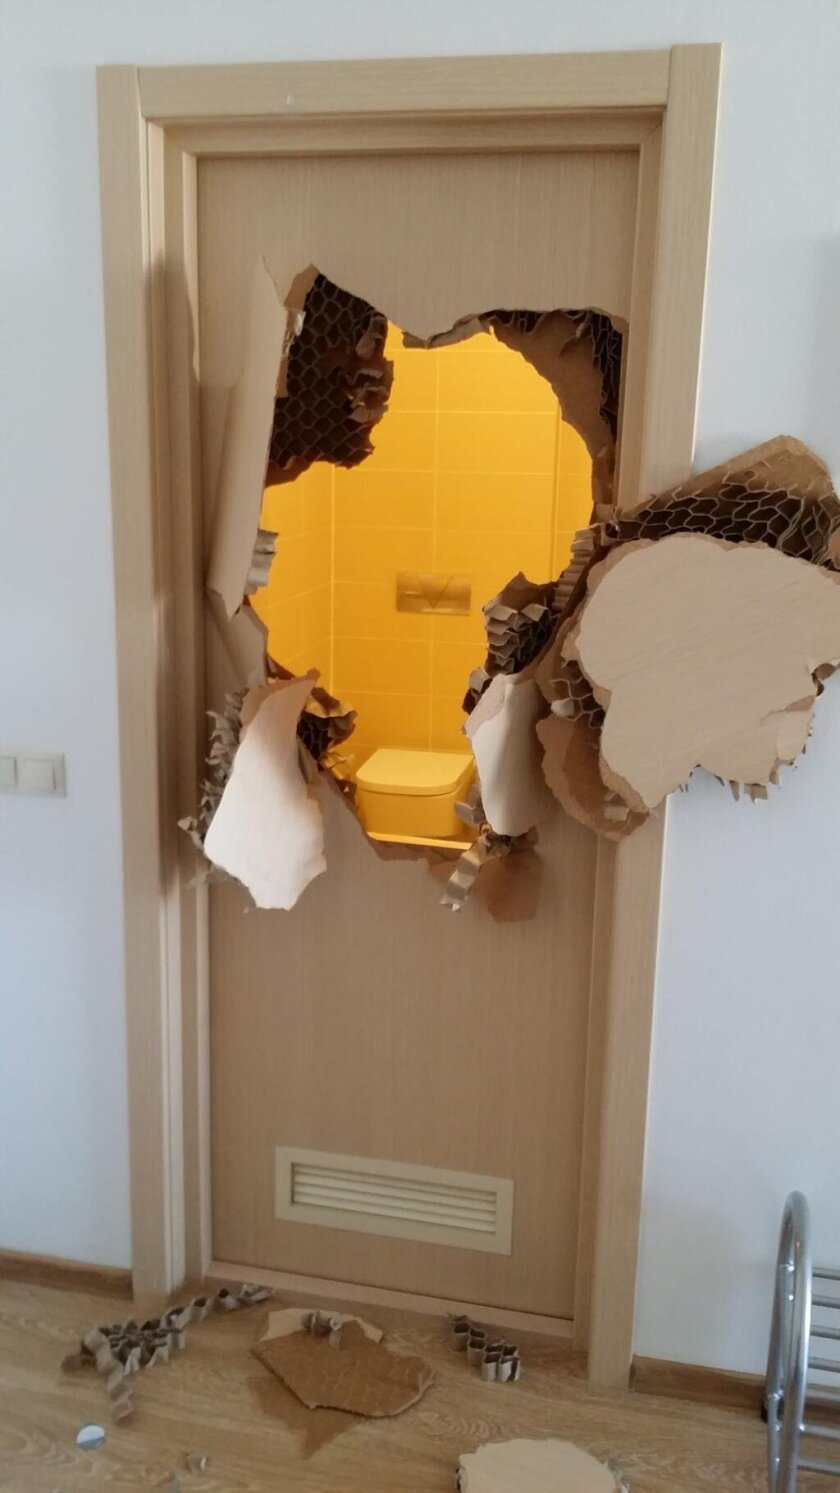 U.S. bobsledder Johnny Quinn tweeted this photo of what happened after the bathroom door jammed with him inside.